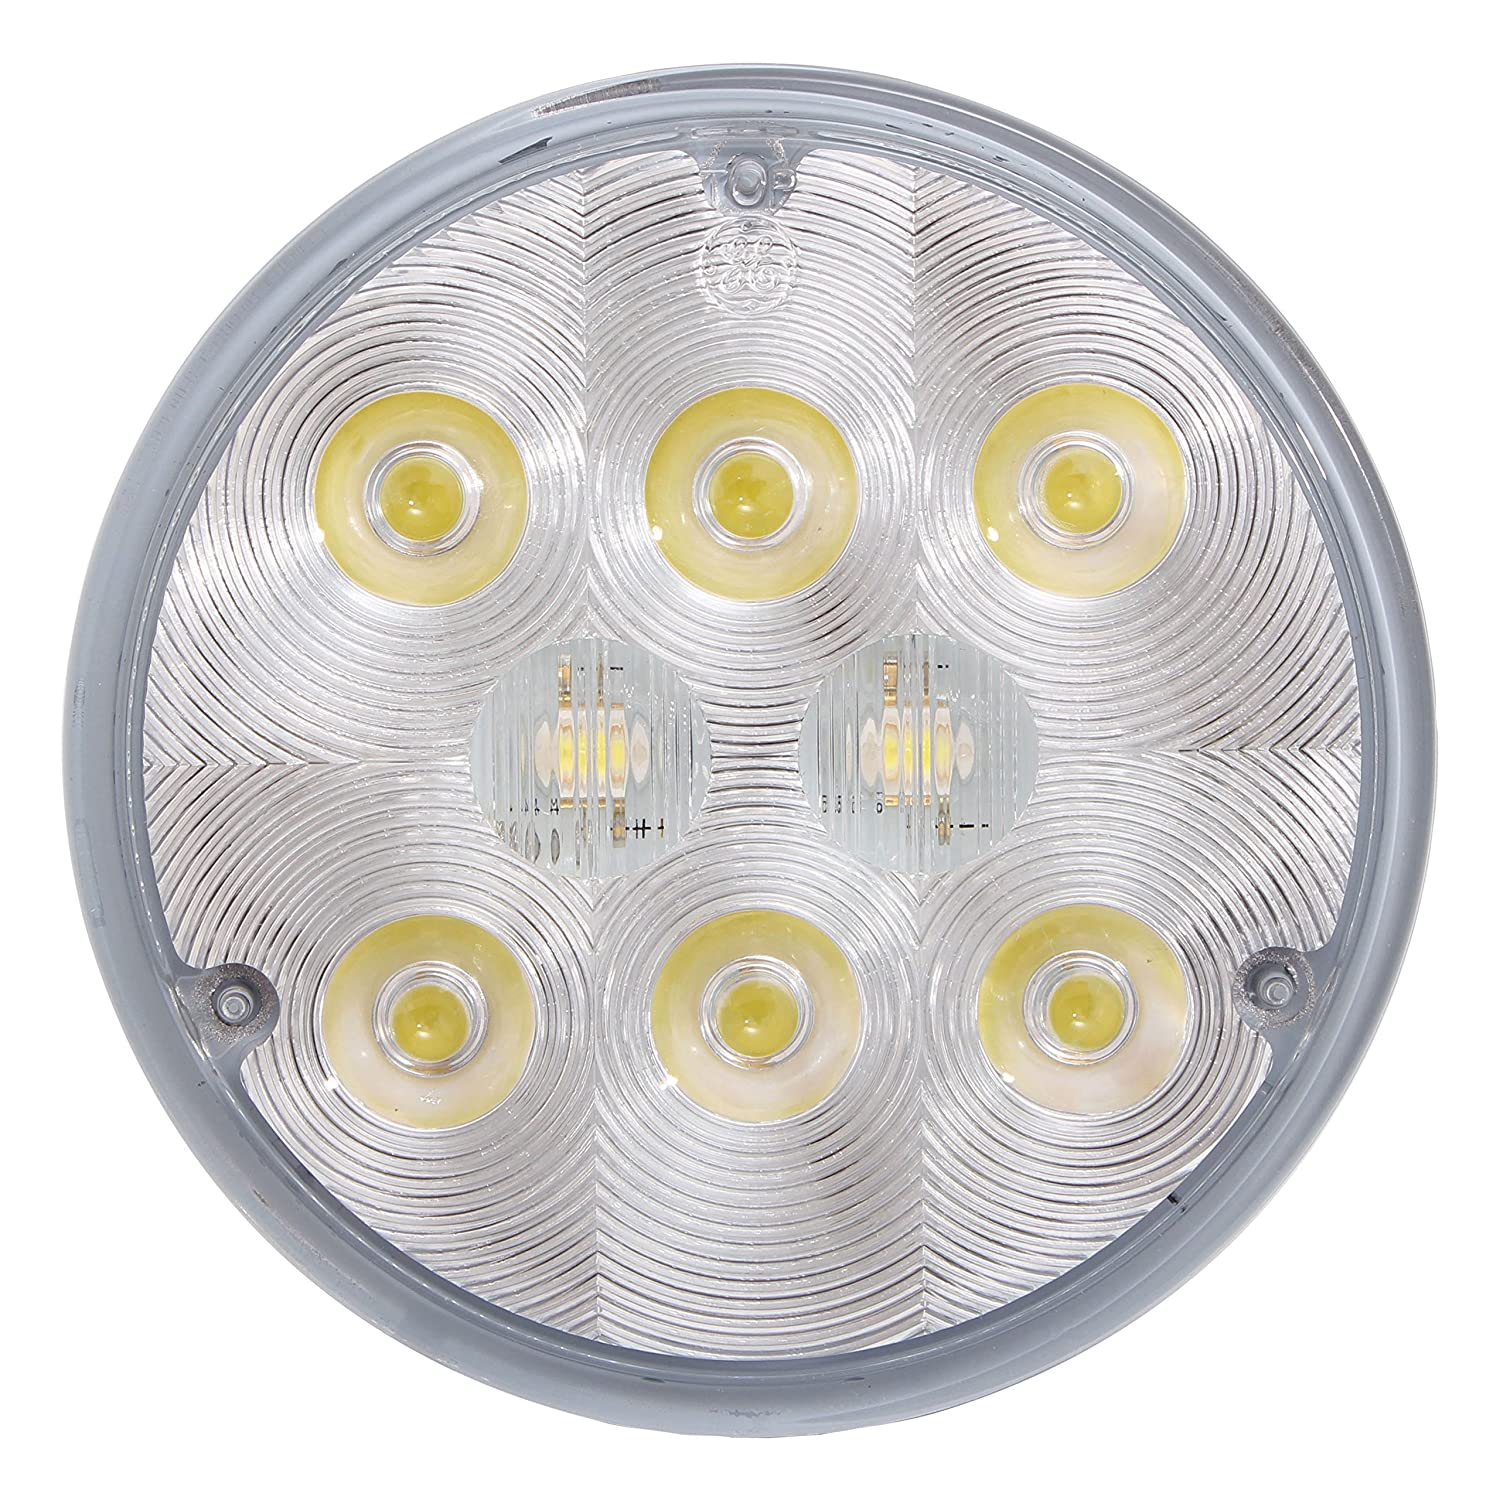 Amazon.com: GE Lighting 69823 Nighthawk 4.5-Inch Round LED Utility Lamp: Automotive